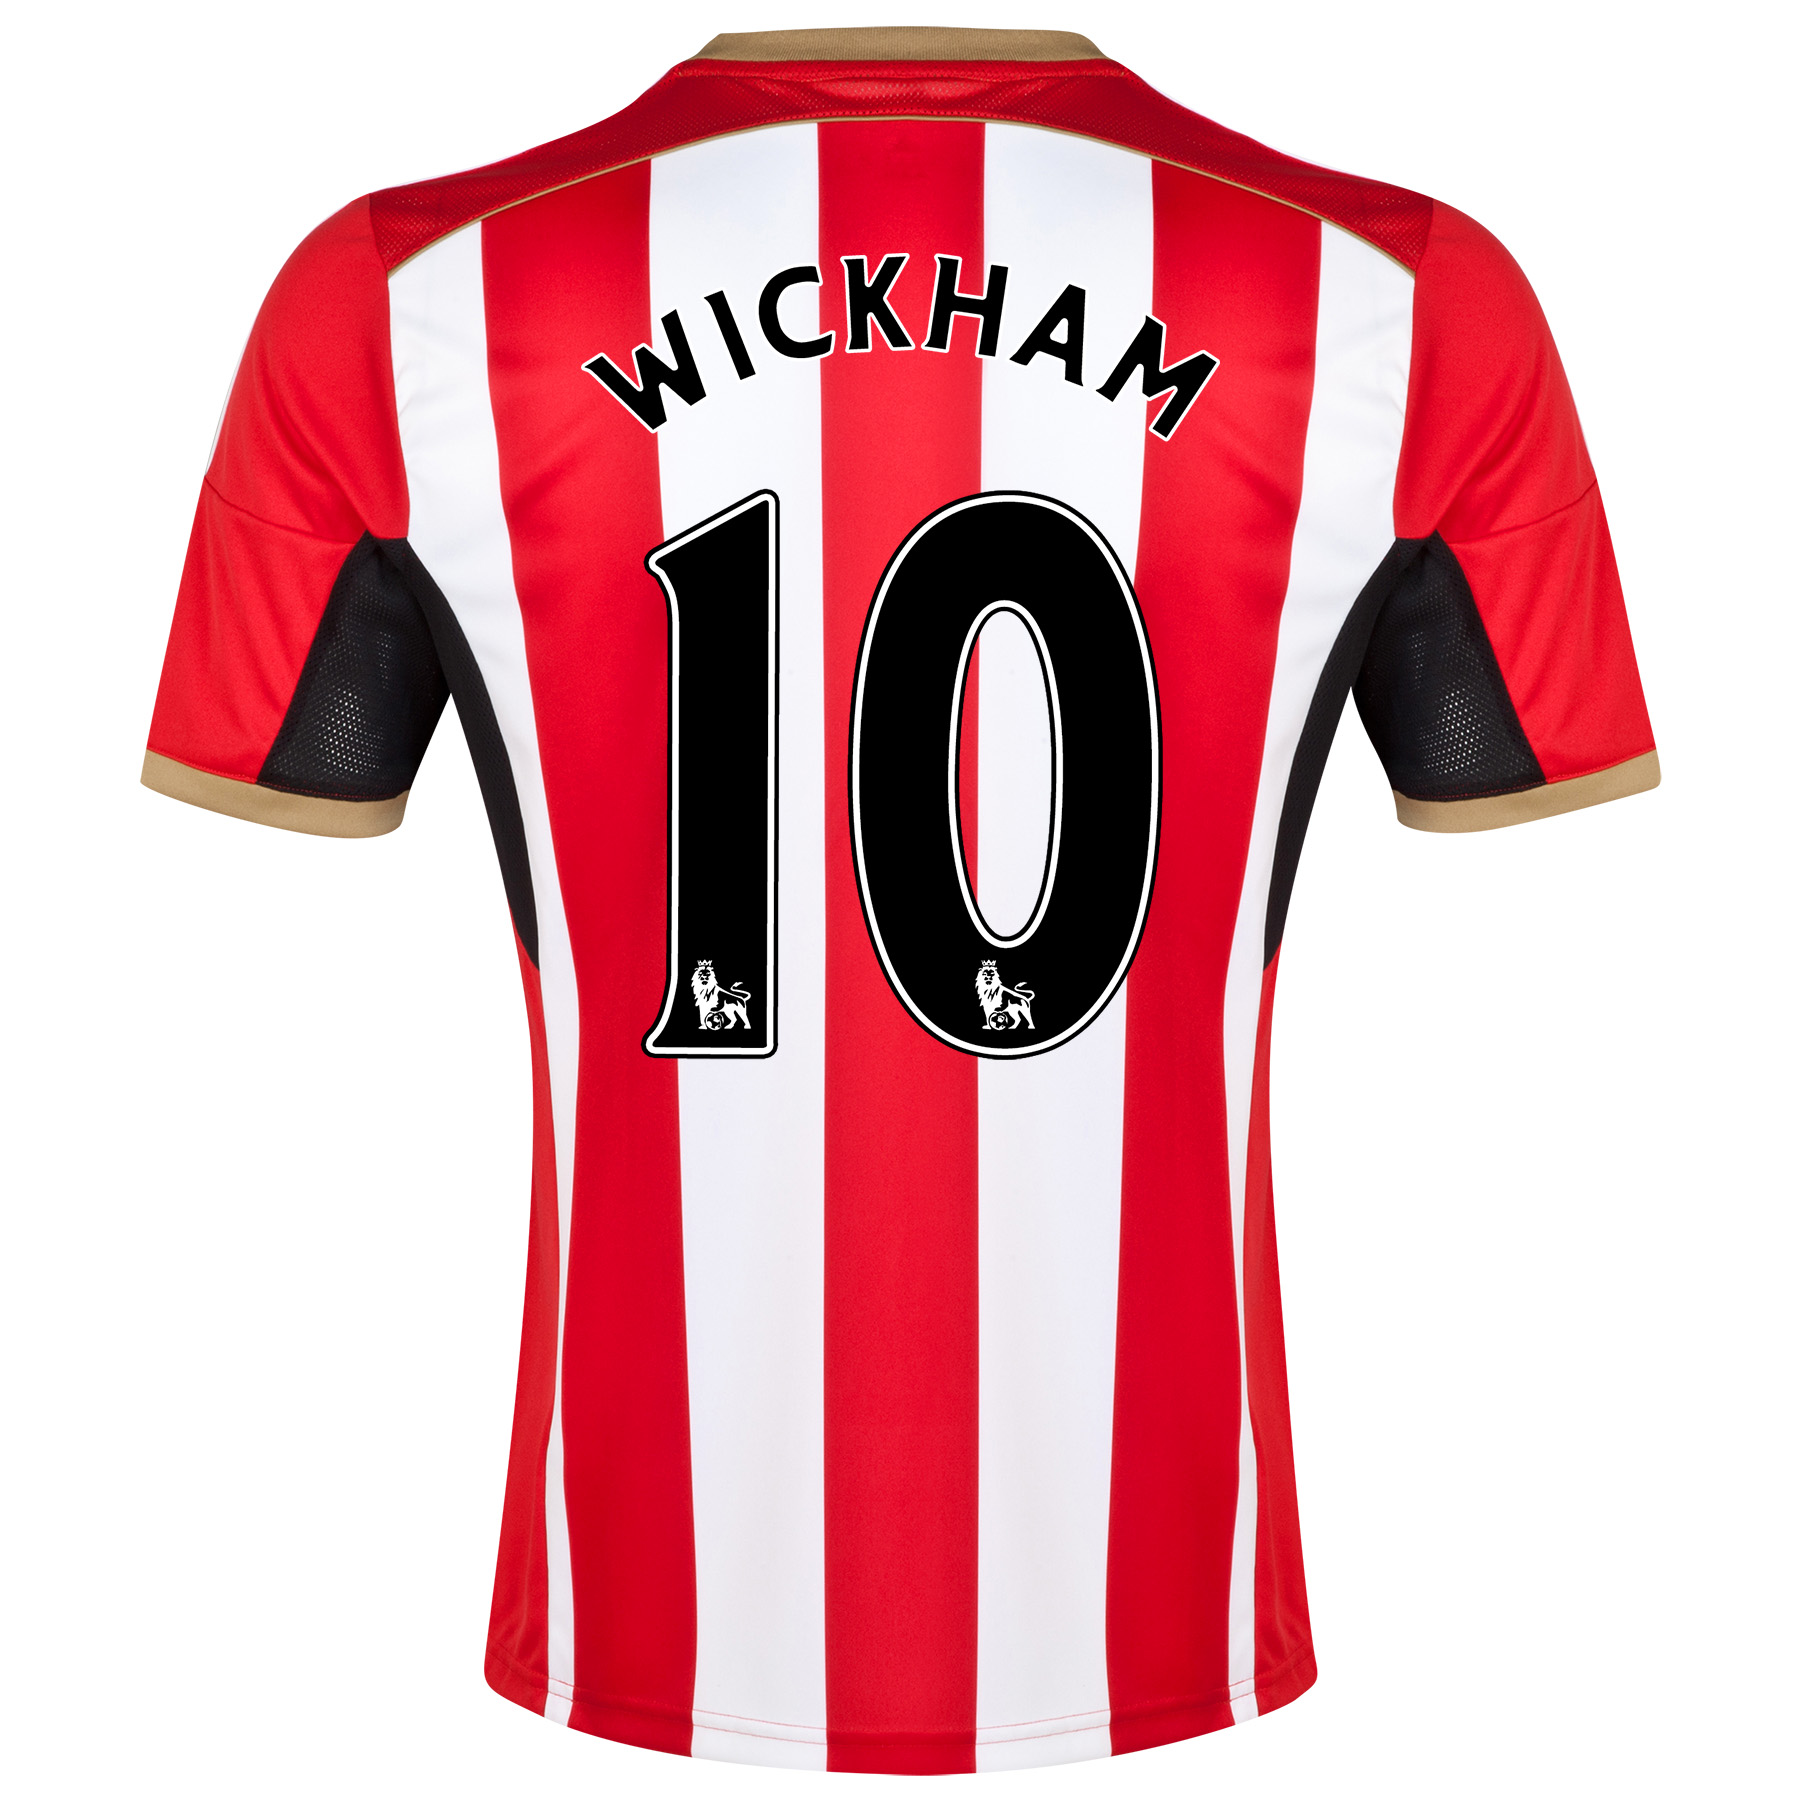 Sunderland Home Shirt 2014/15 - Junior Red with Wickham 10 printing